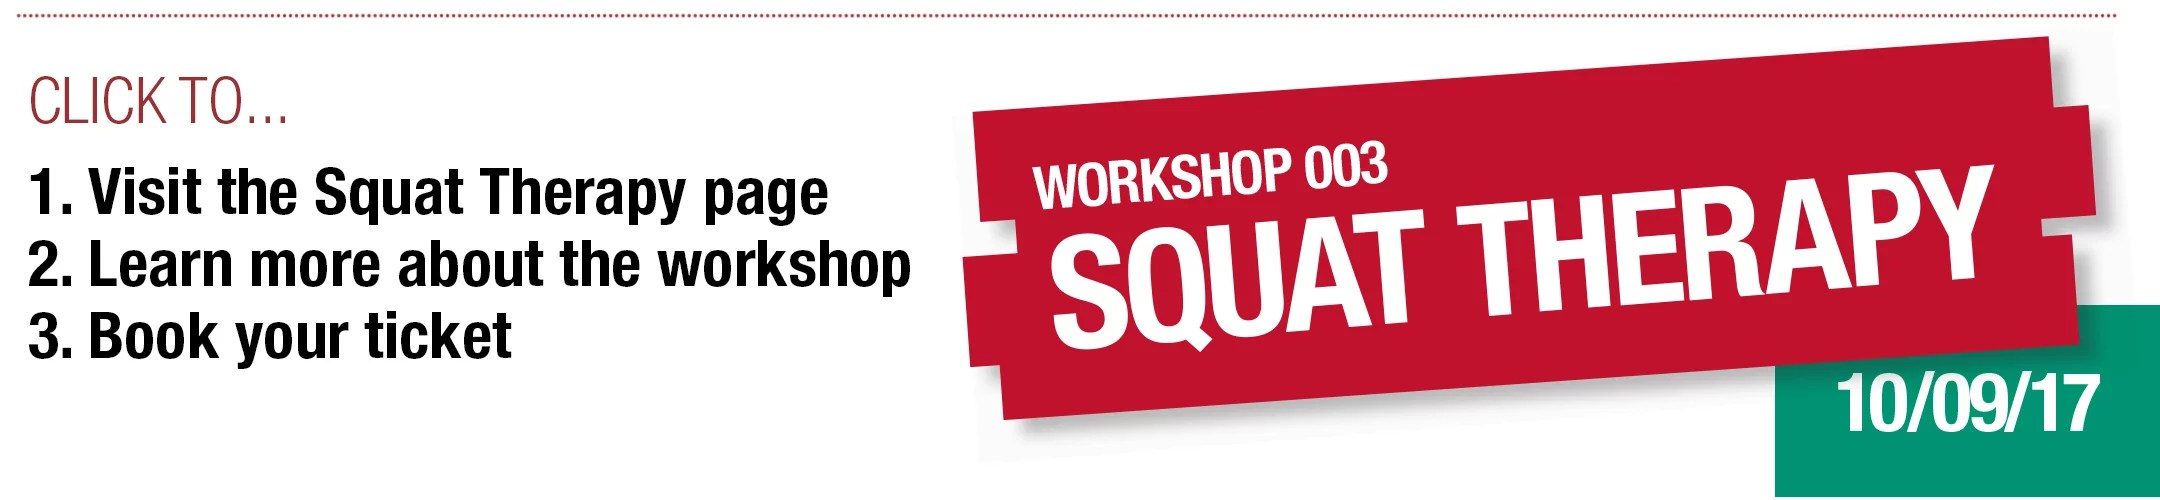 Injury Active Clinic - Squat Therapy - Workshop 002 - CrossFit Cambridgeshire